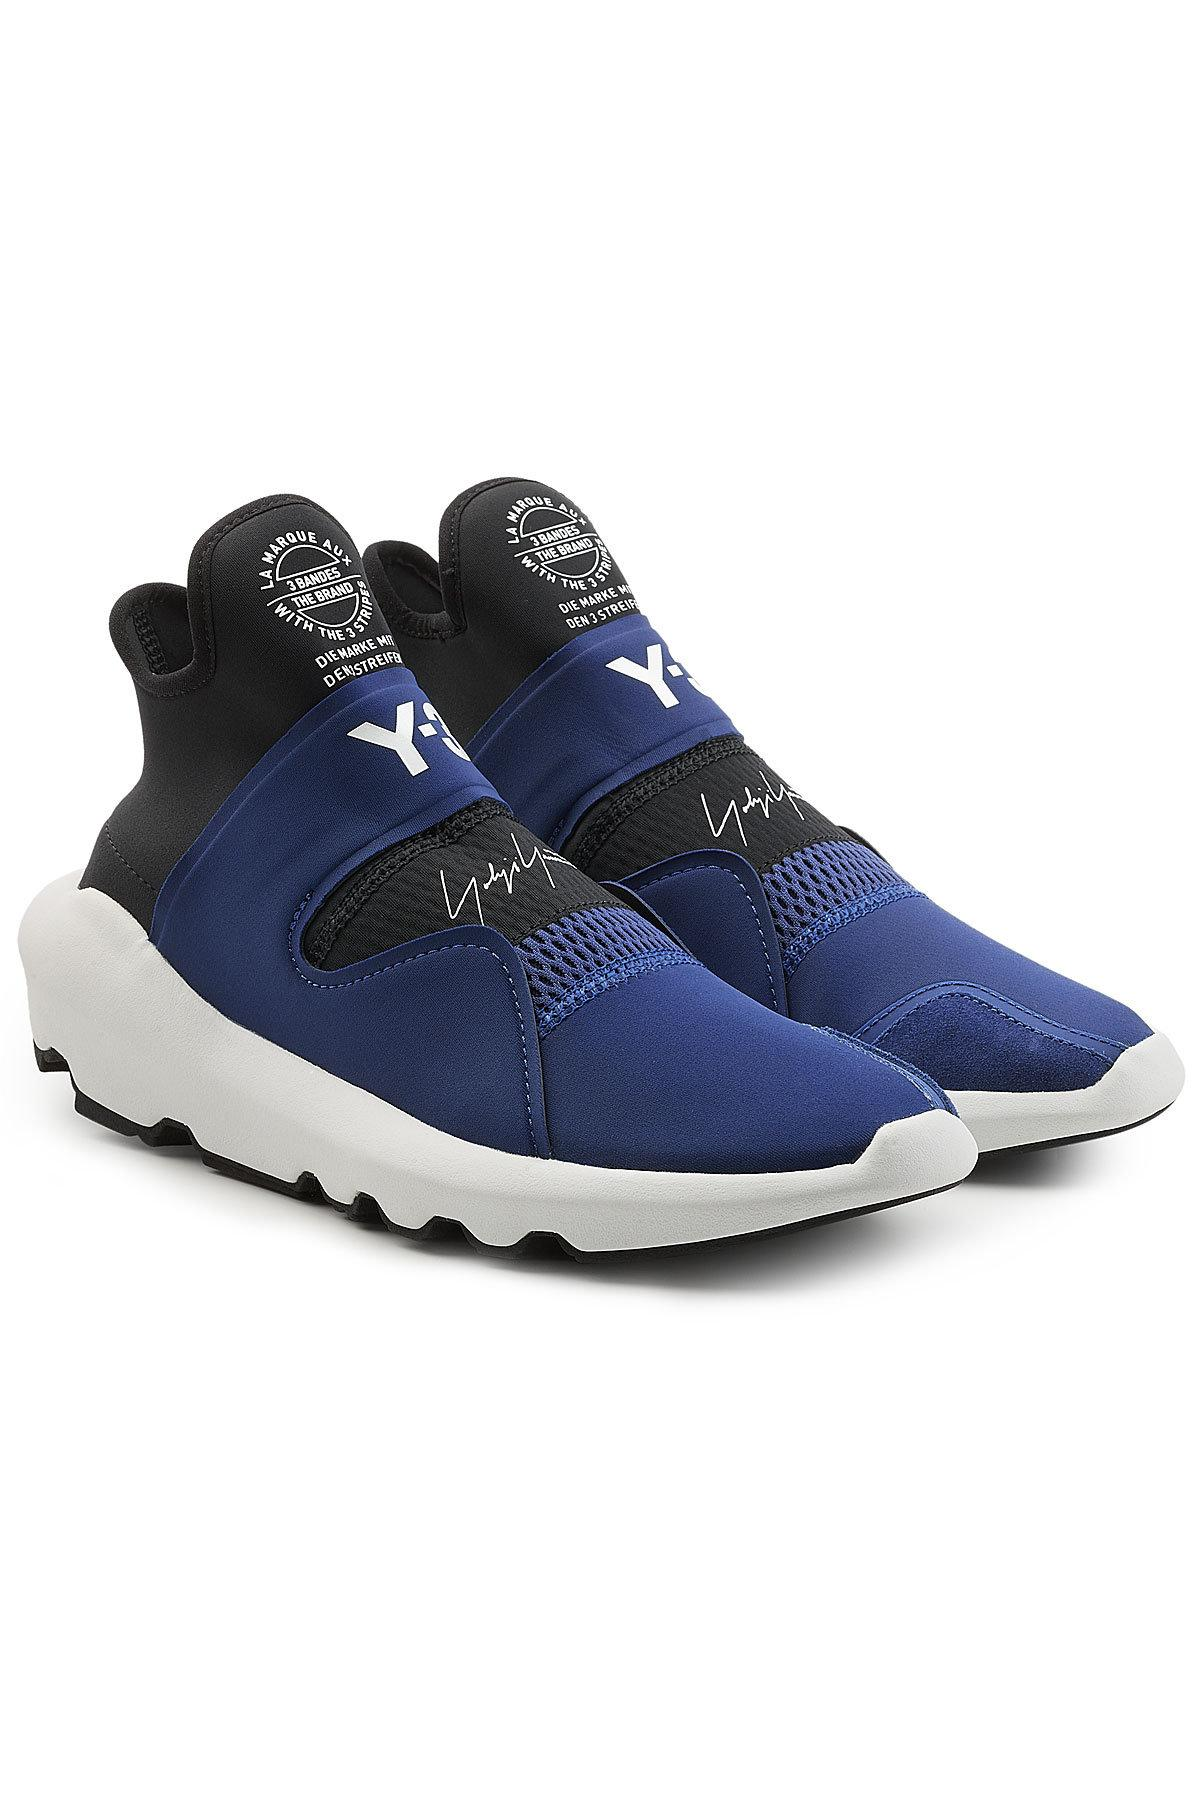 31c0d701f739 Y-3 Suberou Sneakers With Leather In Blue